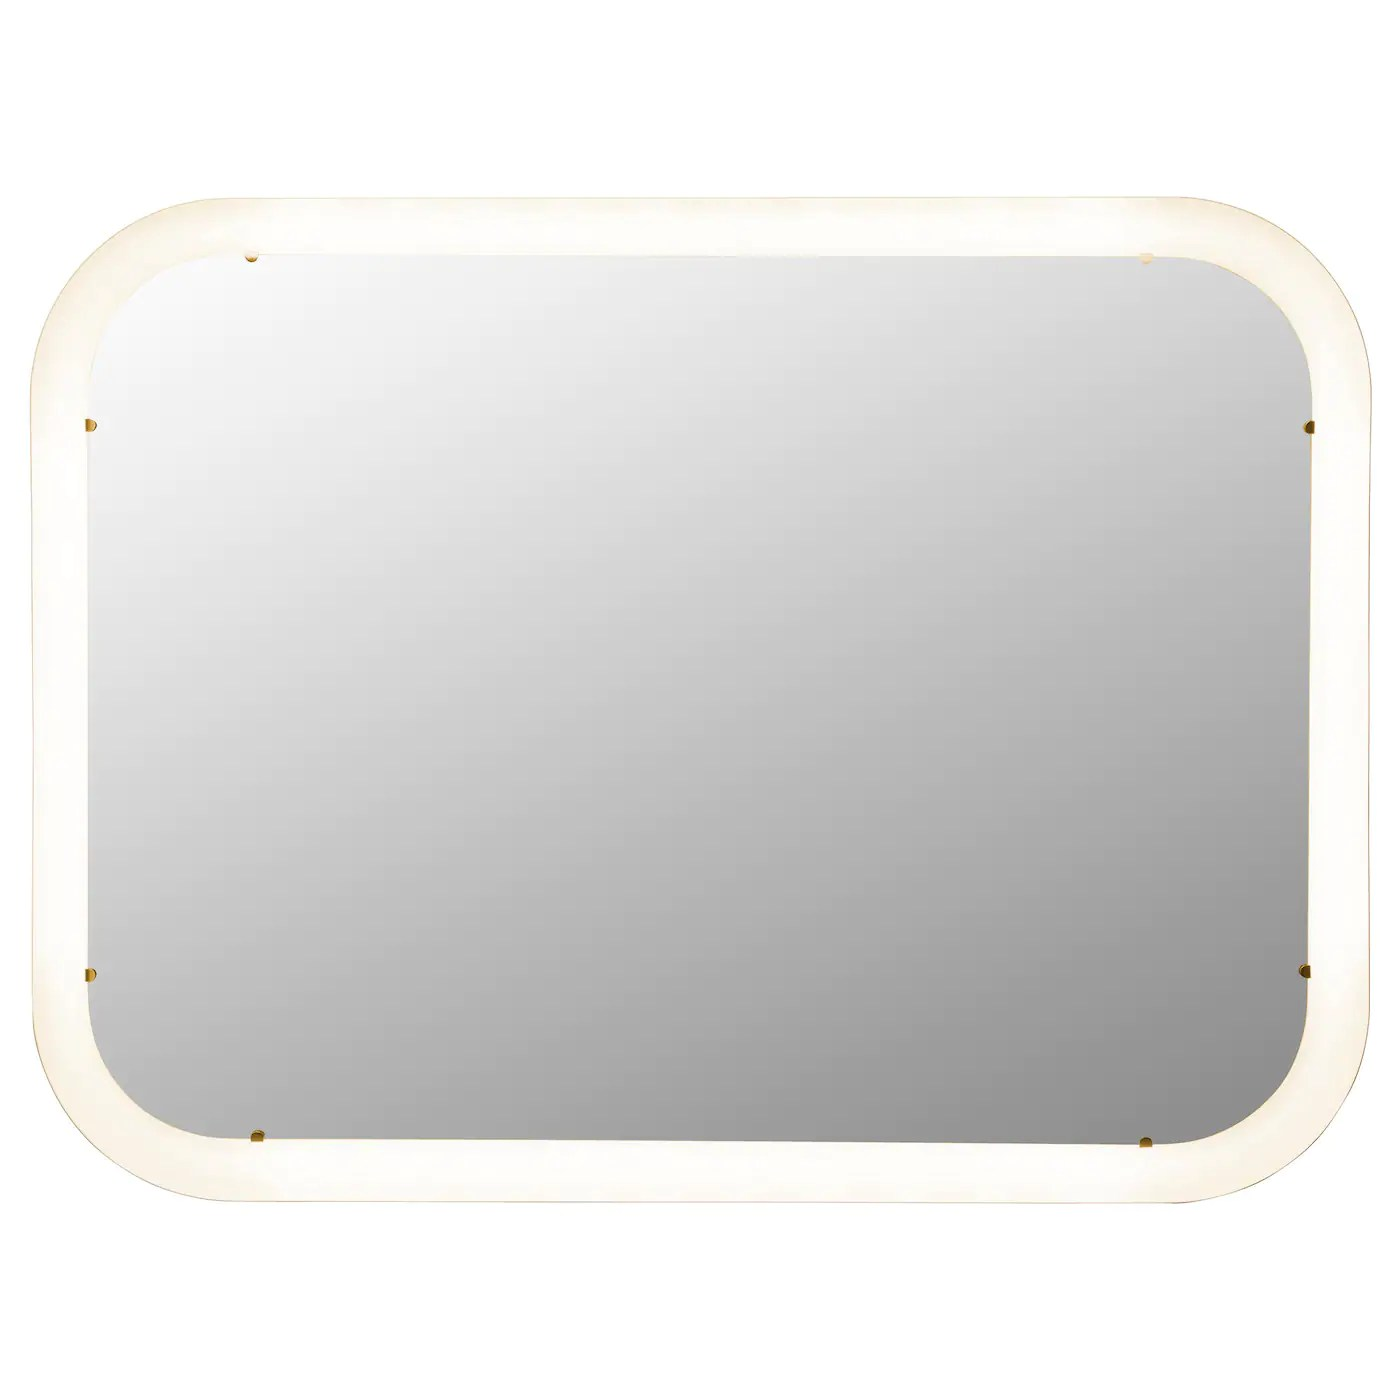 Badkamerspiegel Met Verlichting 120x60 Storjorm Mirror With Integrated Lighting White 80 X 60 Cm